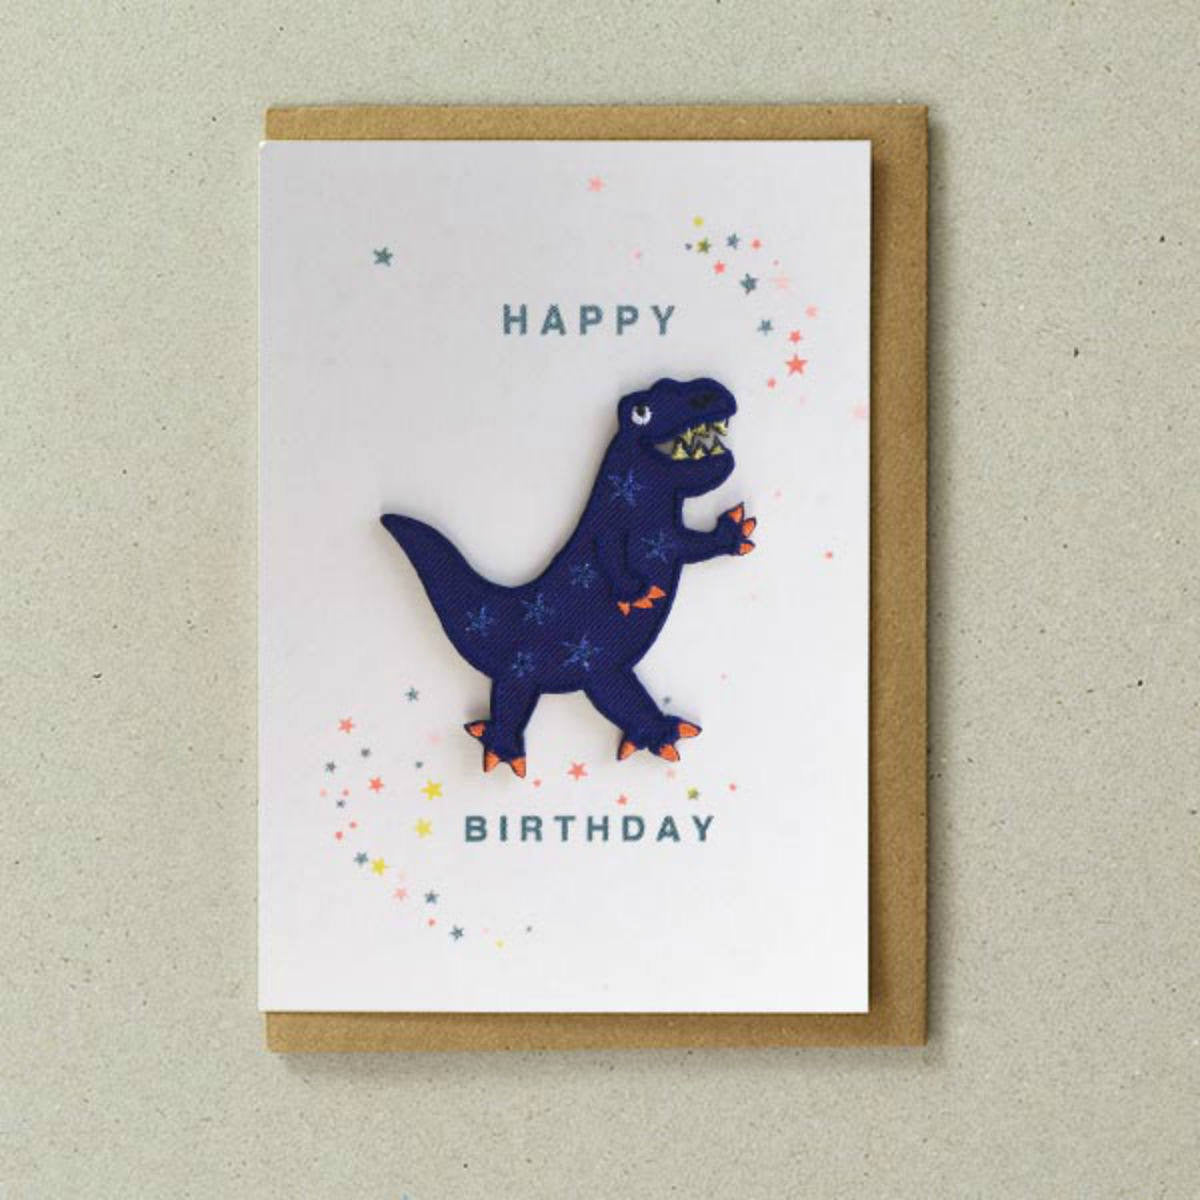 Iron on Patch Card - Happy Birthday Dinosaur